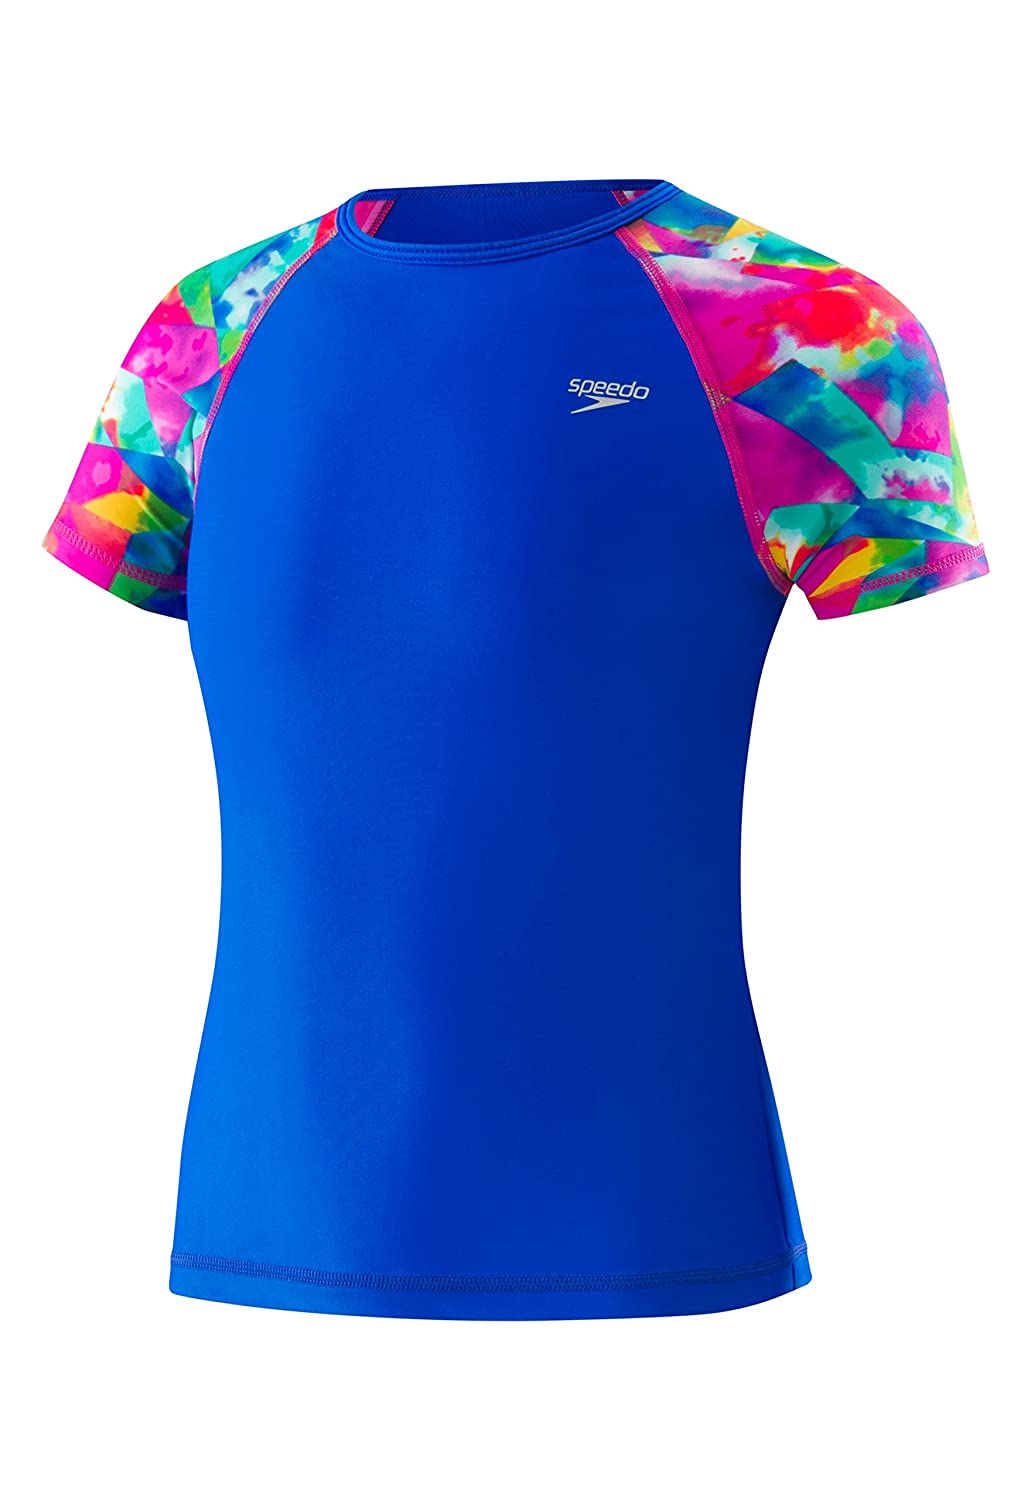 Speedo Girls Printed Short Sleeve Rash Guard Shirt Speedo Men/'s and Women/'s Swimwear 7714724-P